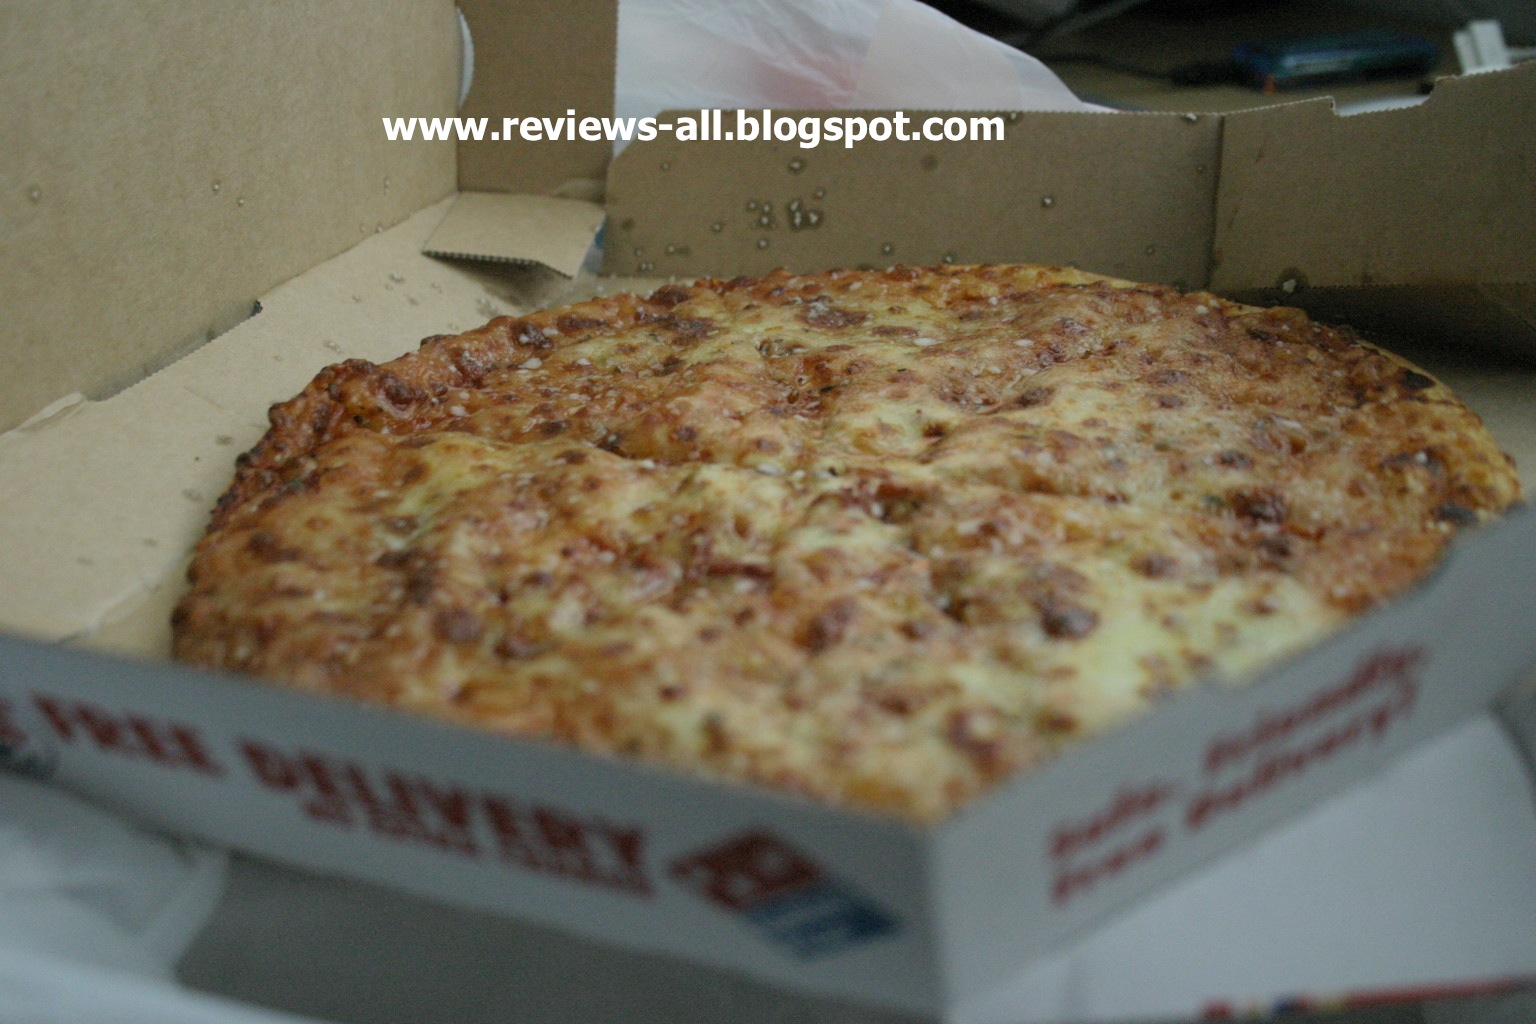 We'll Tell You - A&W Couple's Blog: Domino's Pizza Cheese ...